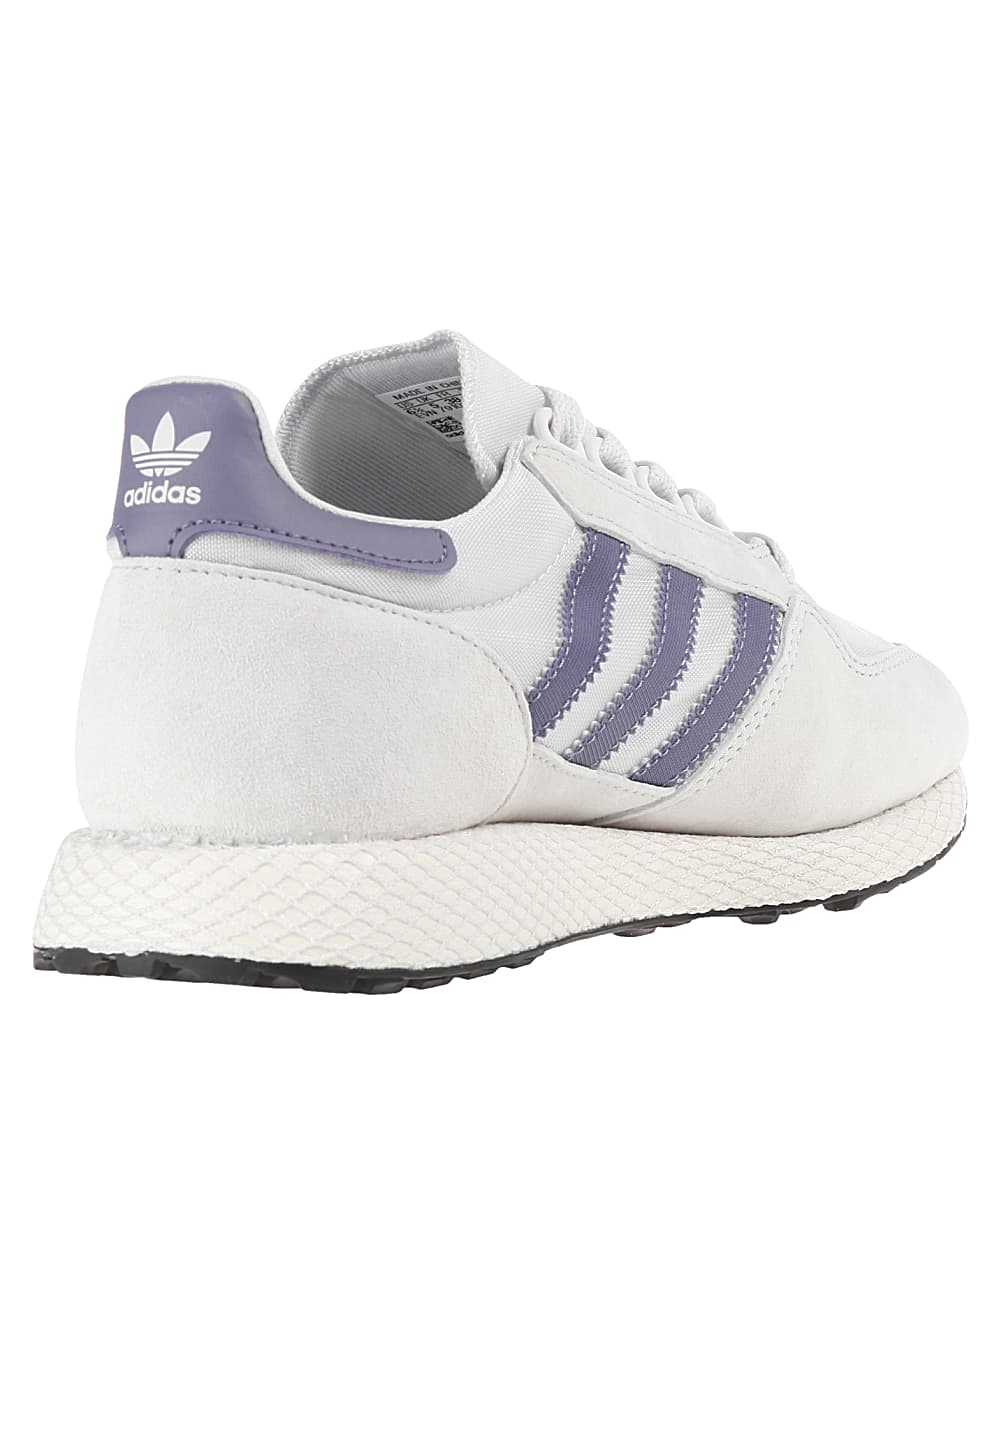 new products bccca 4c661 ADIDAS ORIGINALS Forest Grove - Sneaker per Donna - Beige - Planet ...